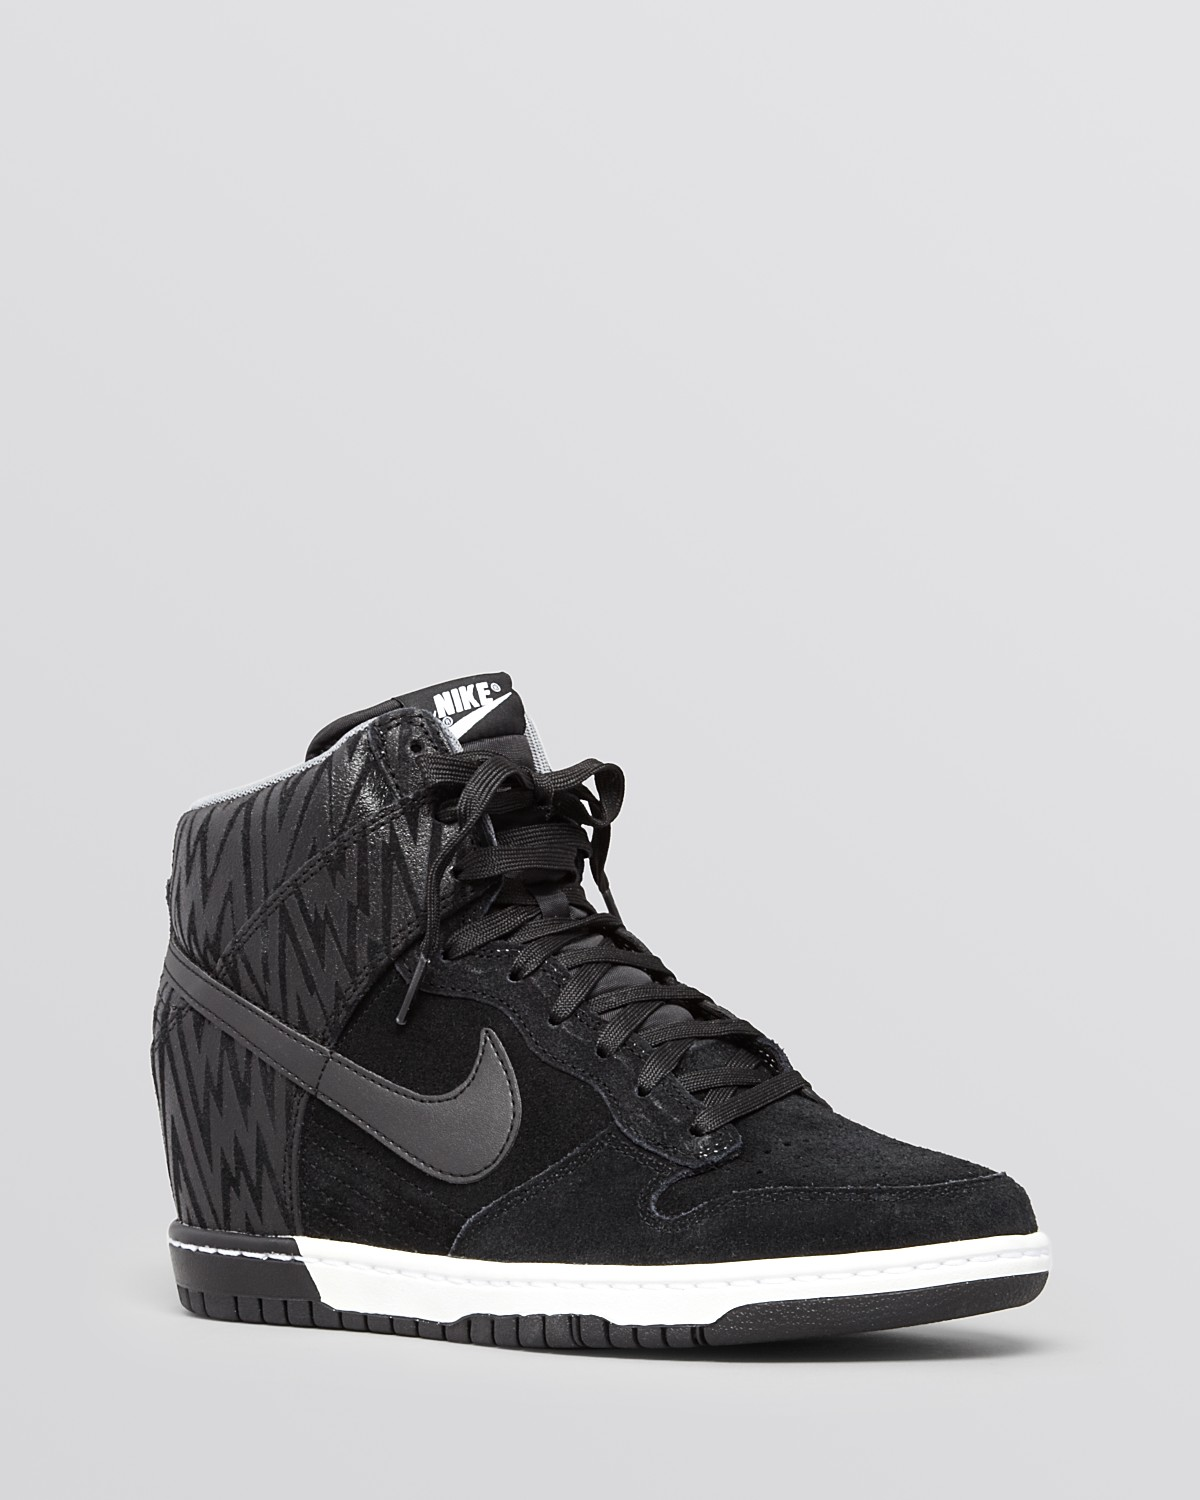 Nike Lace Up High Top Wedge Sneakers - Women's Dunk Sky Hi ...